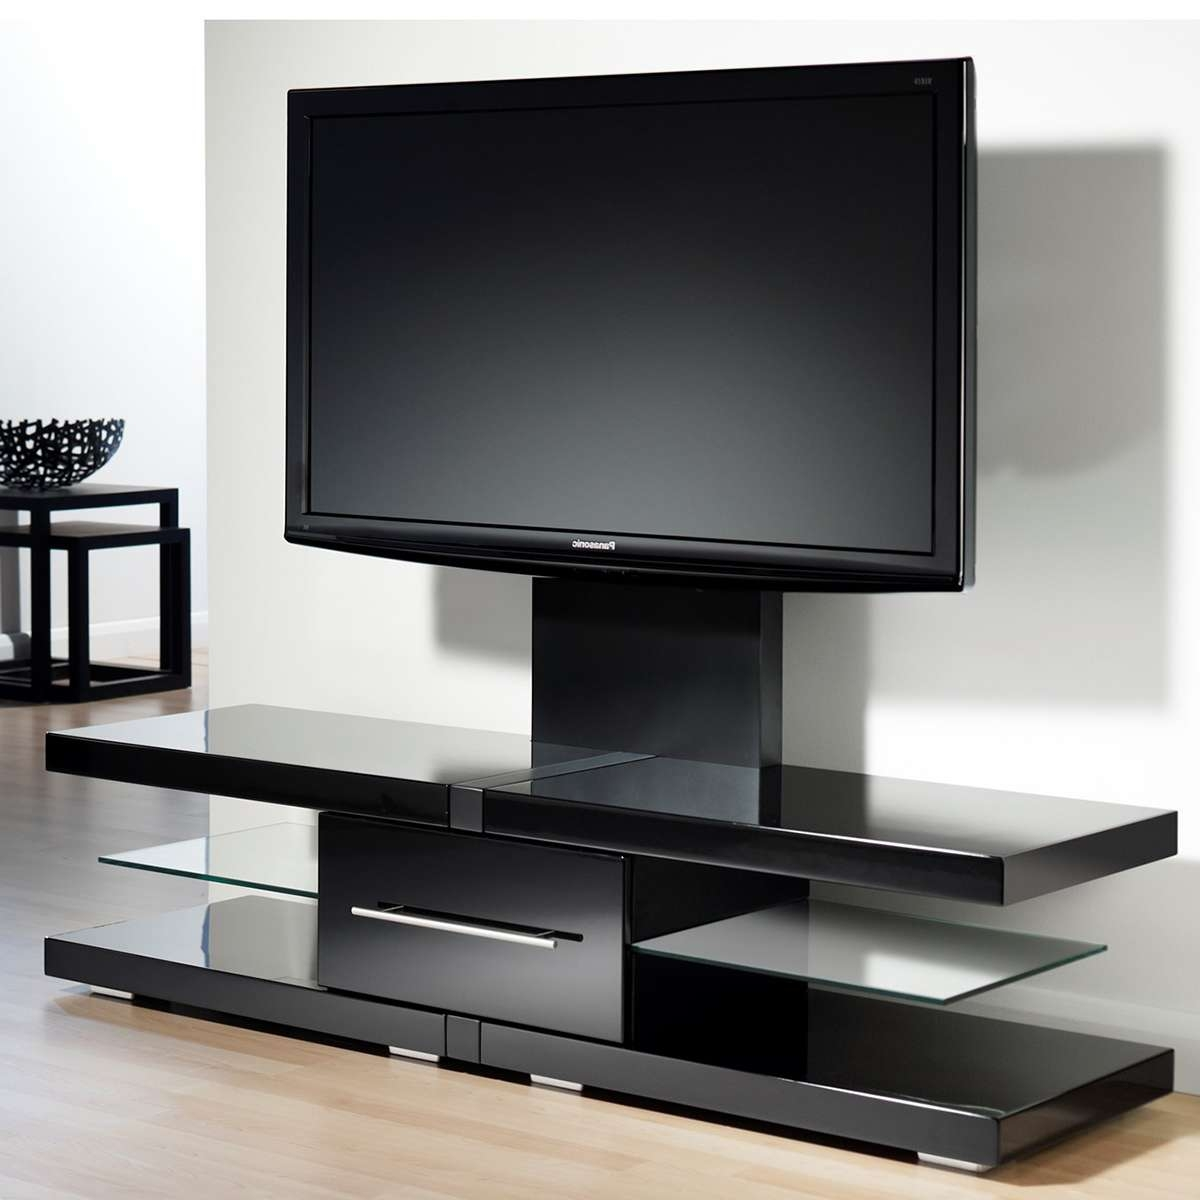 Tv : Techlink Bench Corner Tv Stands Bright Techlink Bench Corner In Techlink Bench Corner Tv Stands (View 3 of 15)